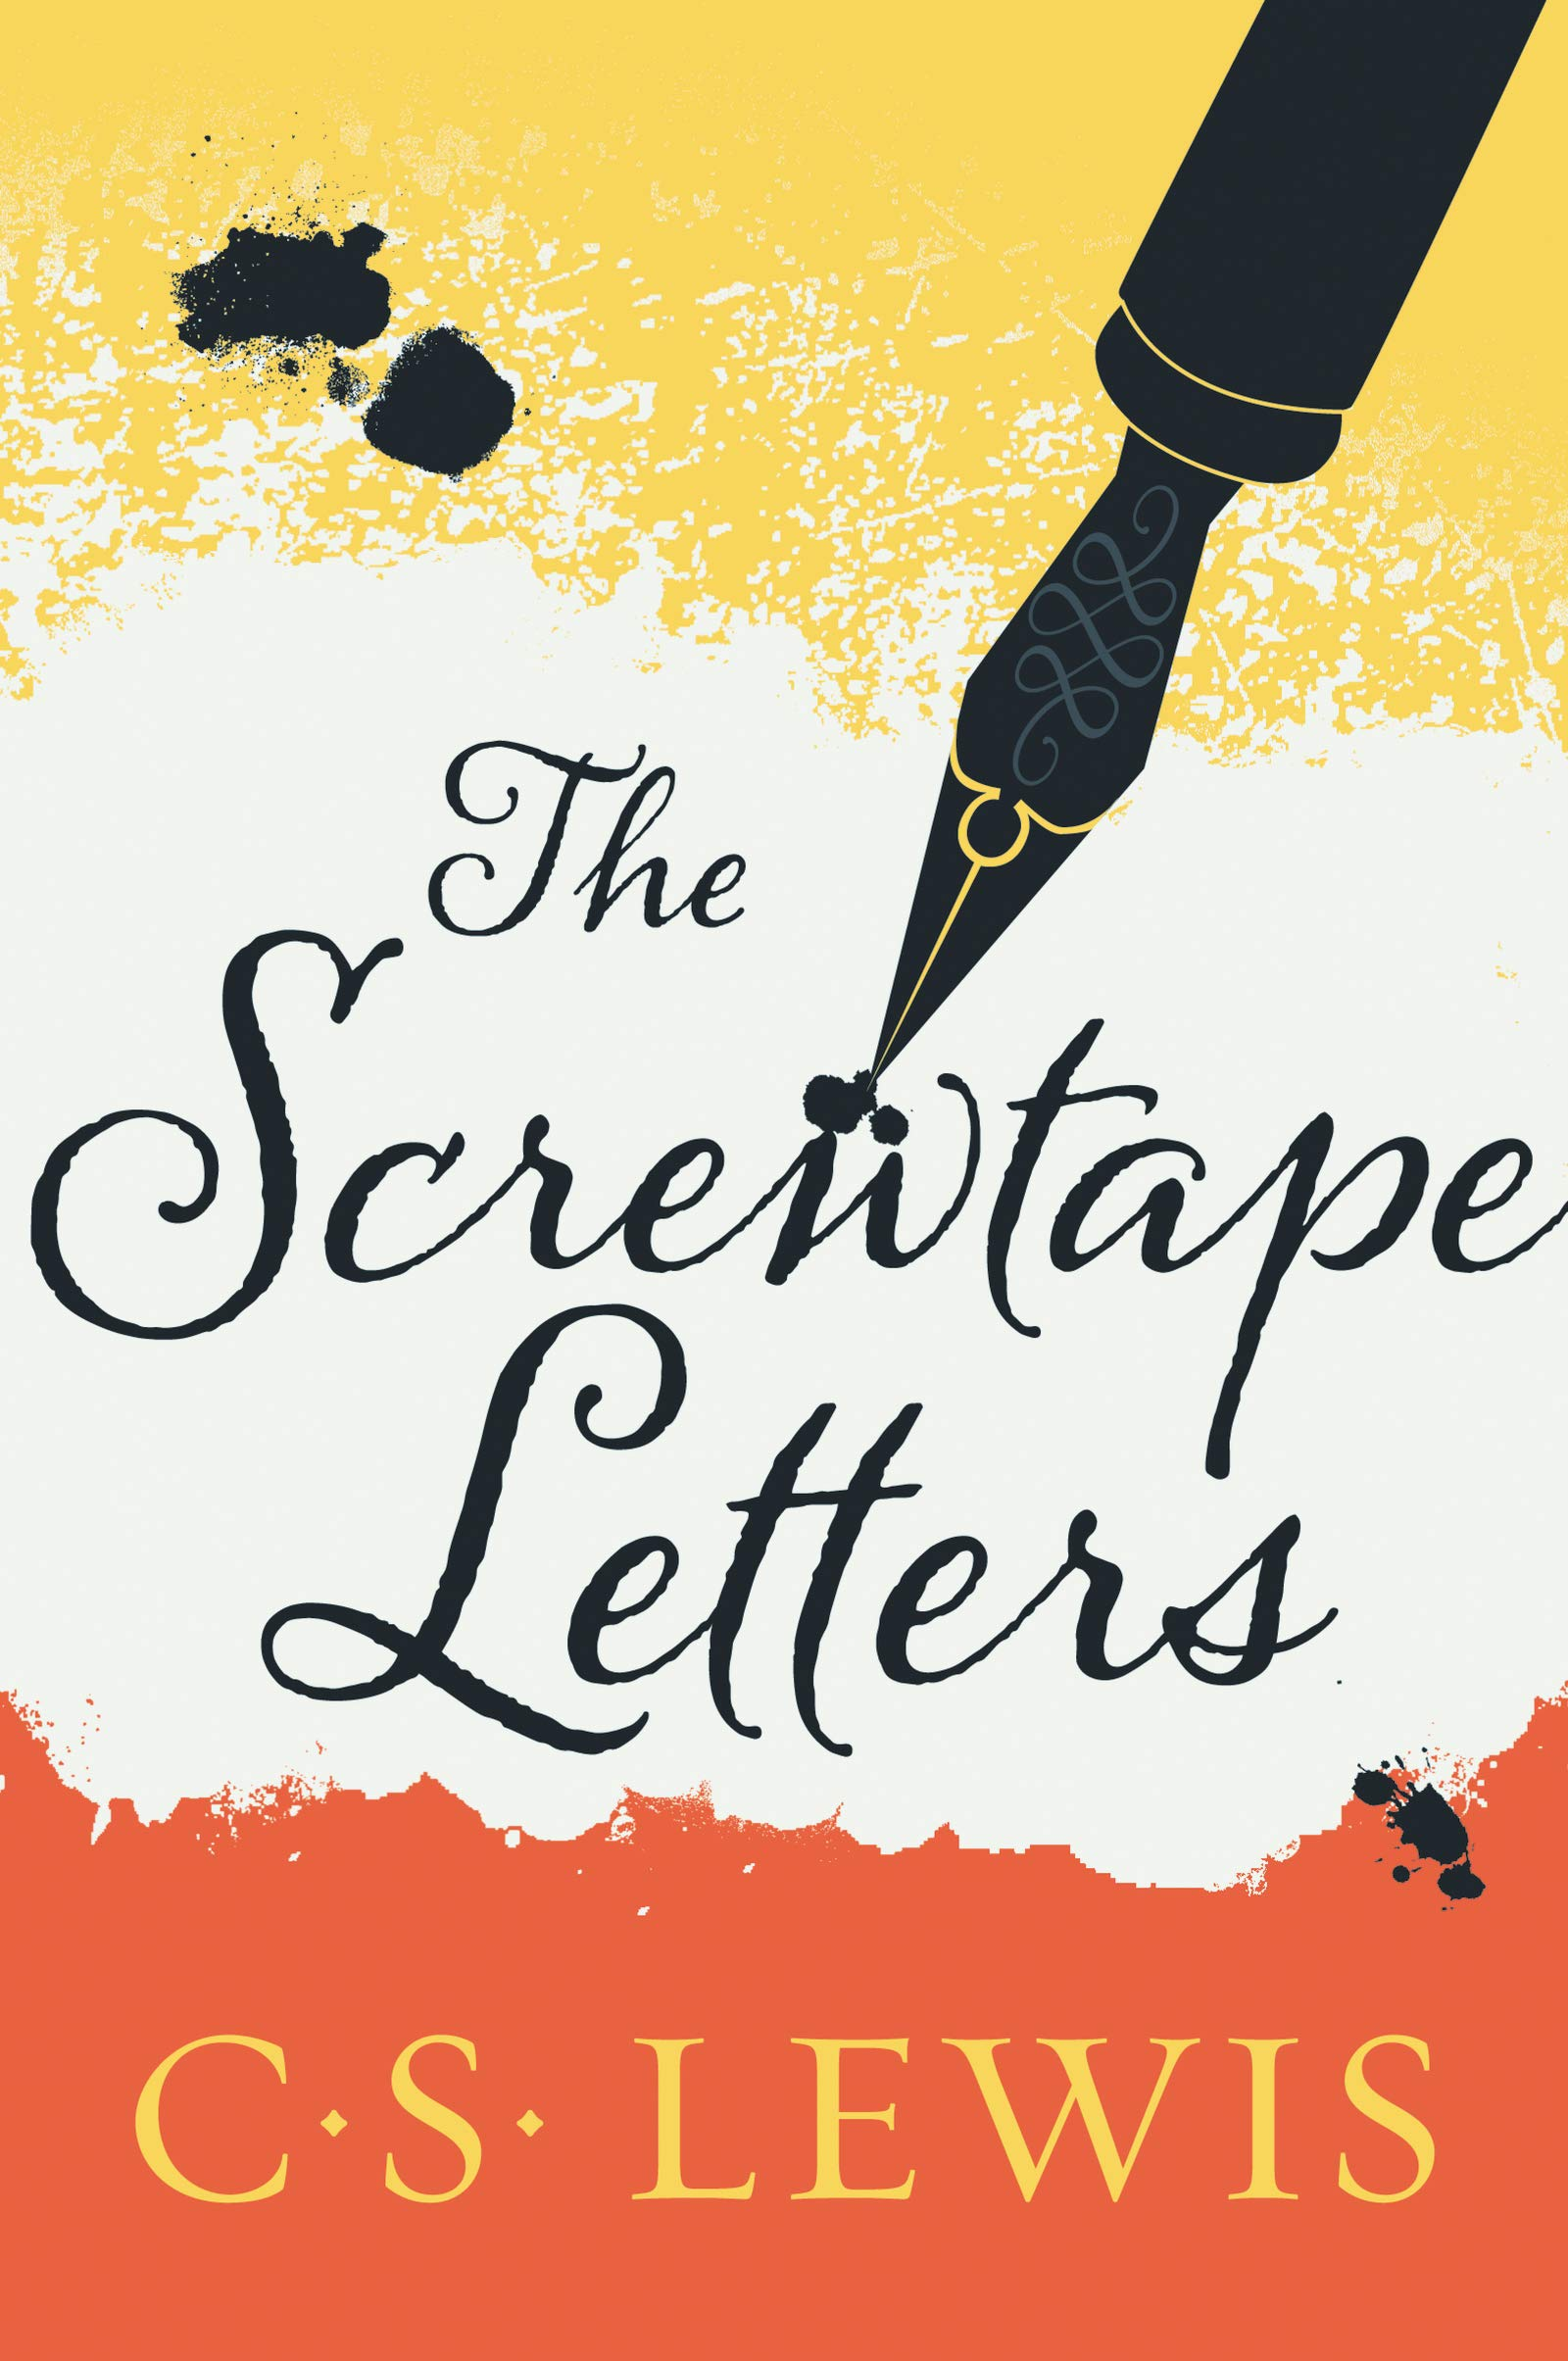 Image result for The Screwtape Letters by C.S. Lewis